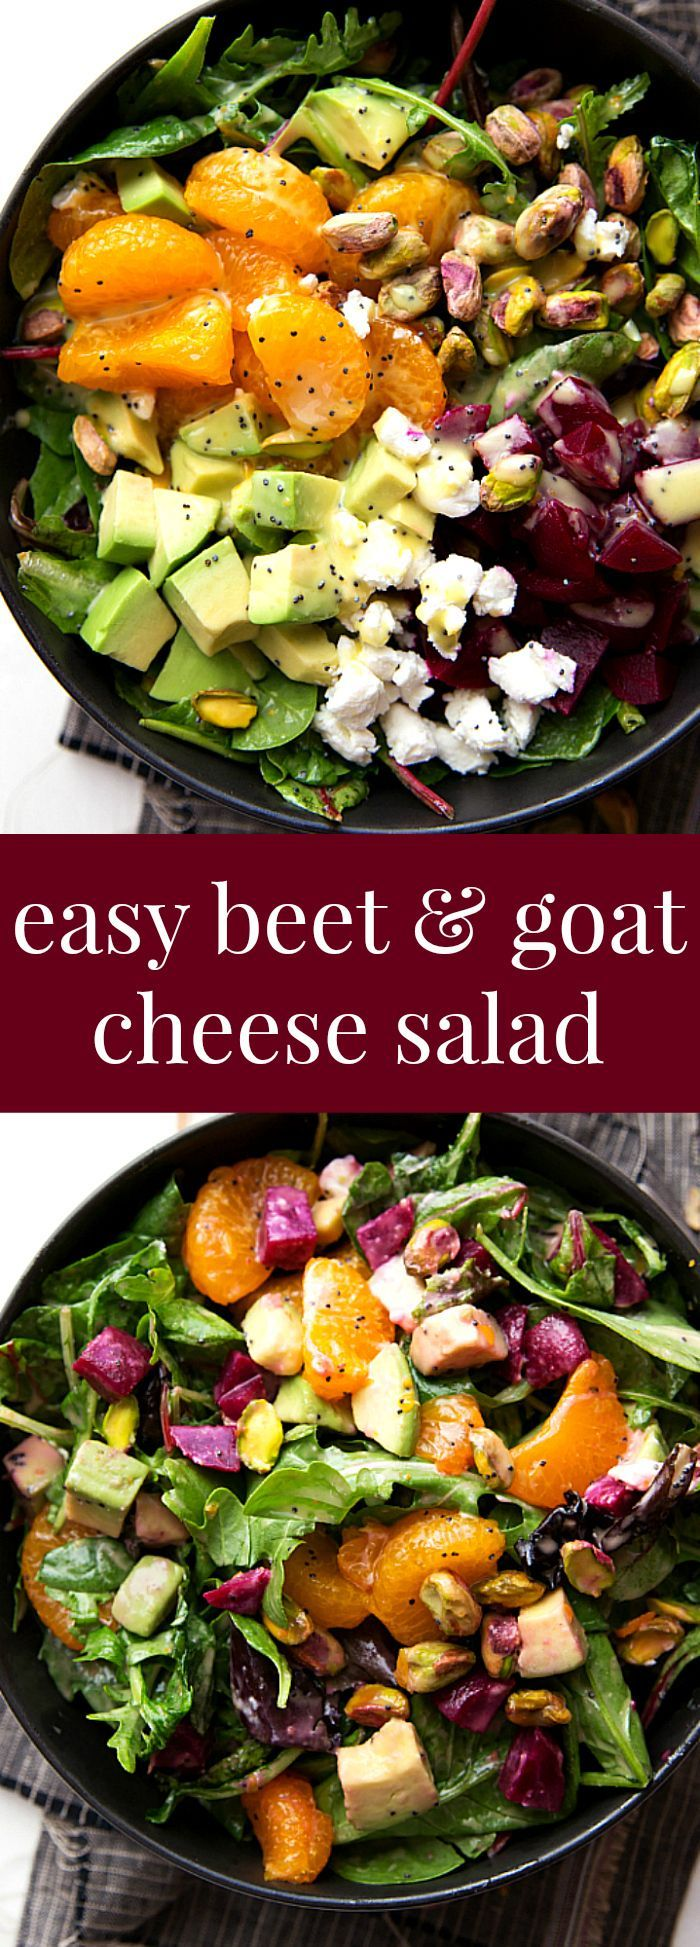 Super quick beet and goat cheese salad with a delicious orange honey poppyseed dressing